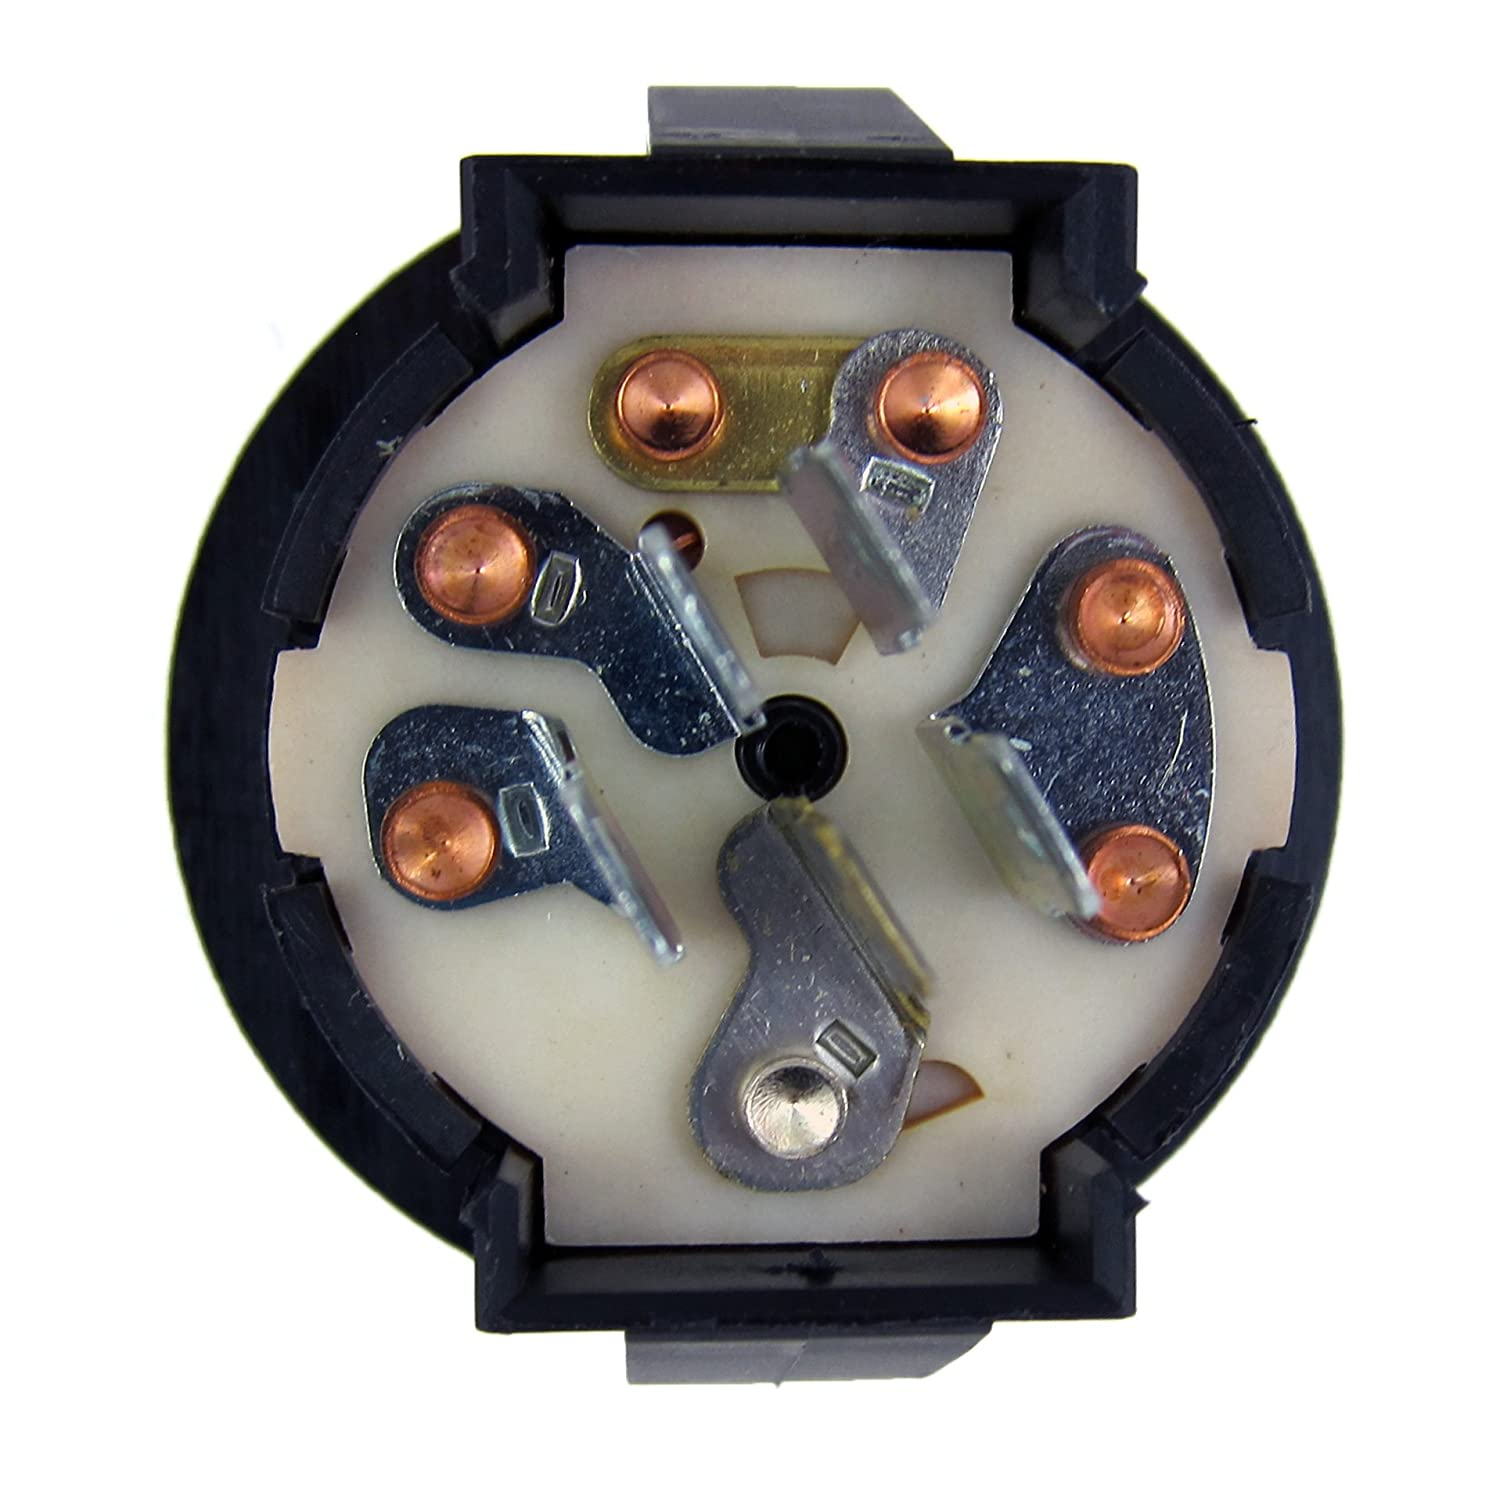 Toro Switch-ignition Part 137-4100 replaces 117-2221